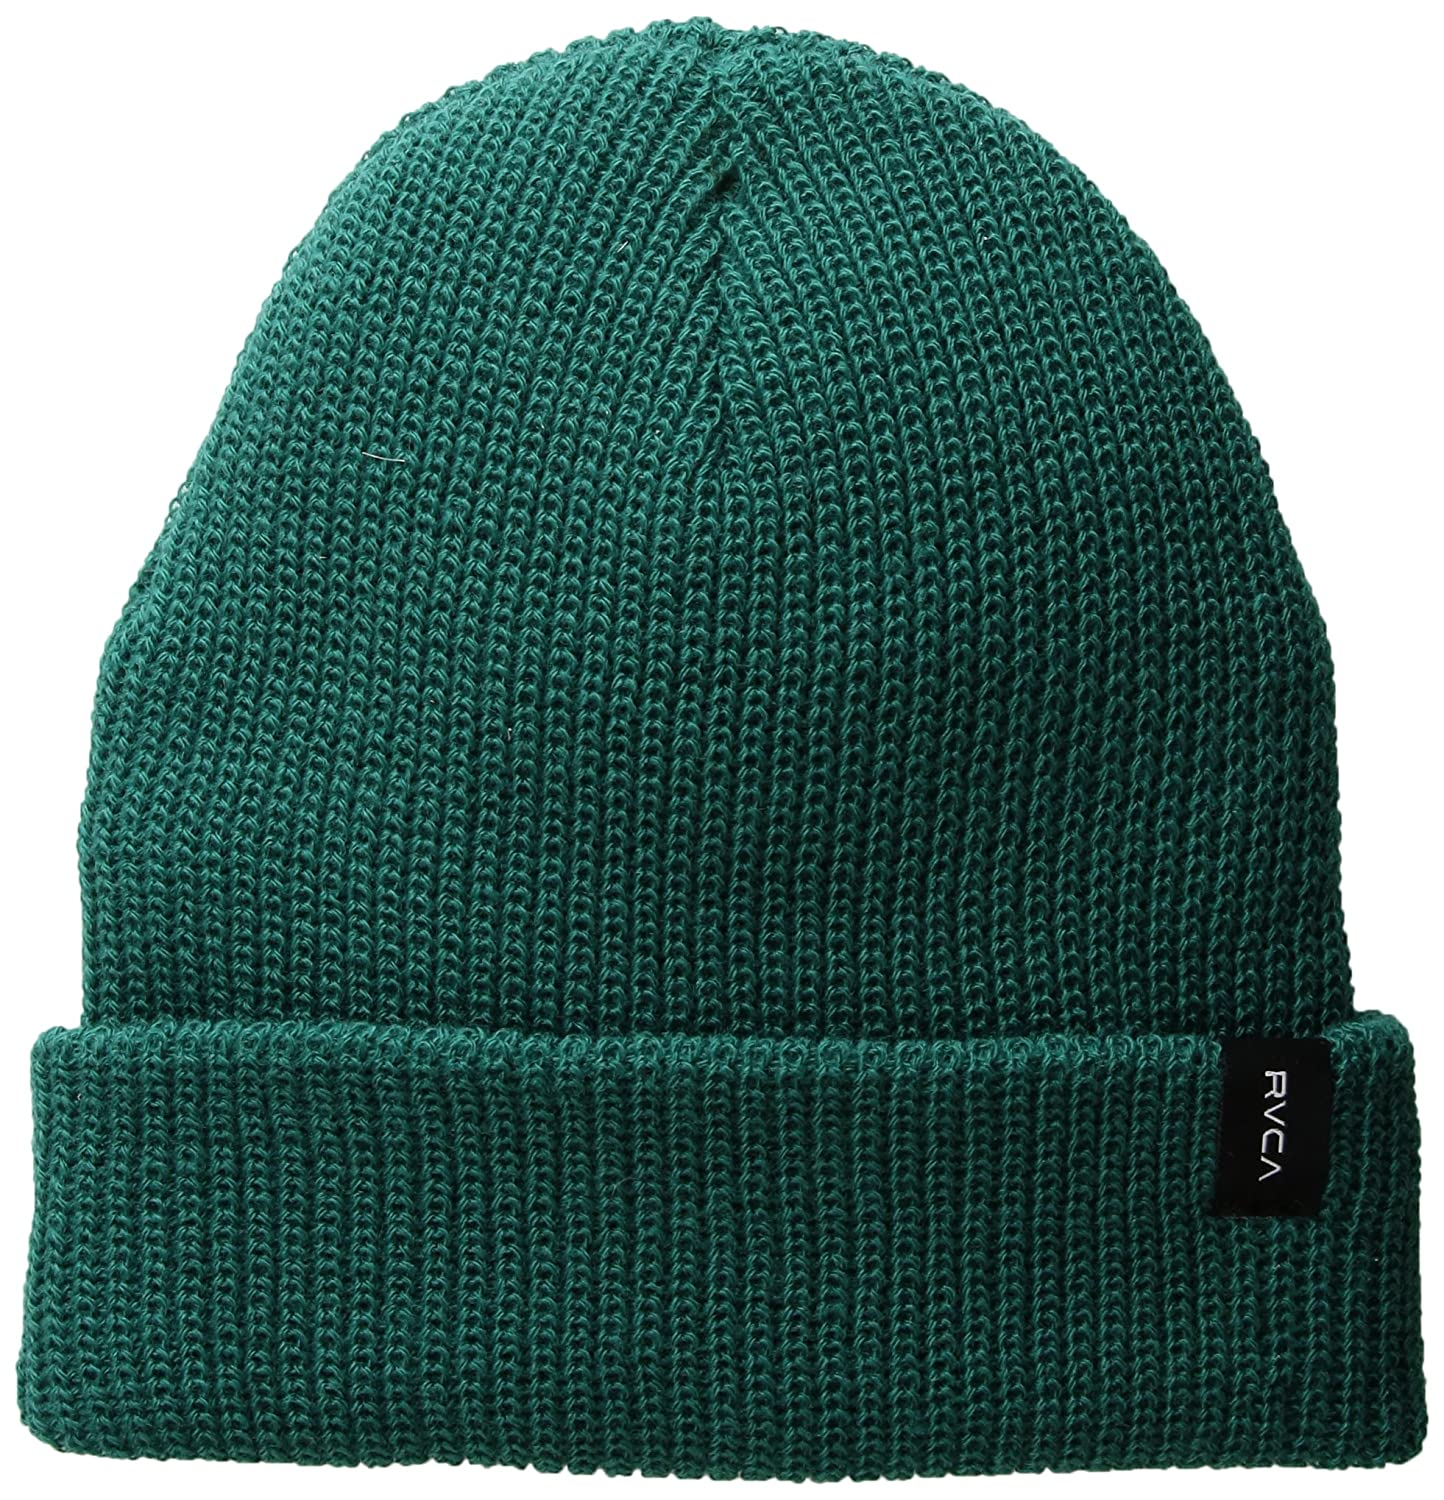 5d2eded7 RVCA Mens Towne Beanie, O/S, Teal: Amazon.co.uk: Clothing